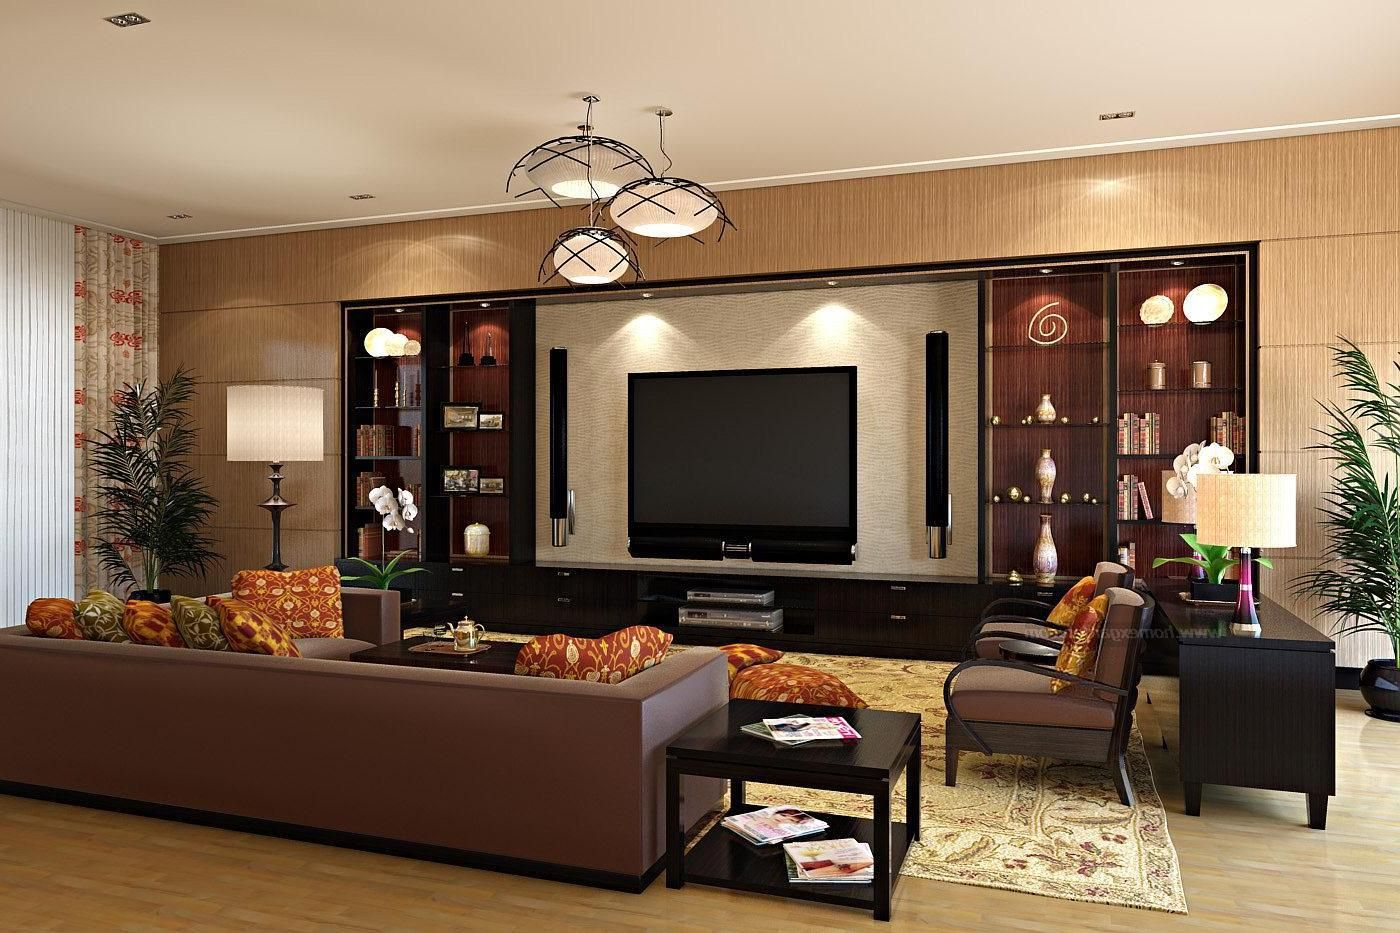 Chinese Interior Design Style  Chinese Interior Design Style Impressive Best Living Room Designs In India Decorating Inspiration